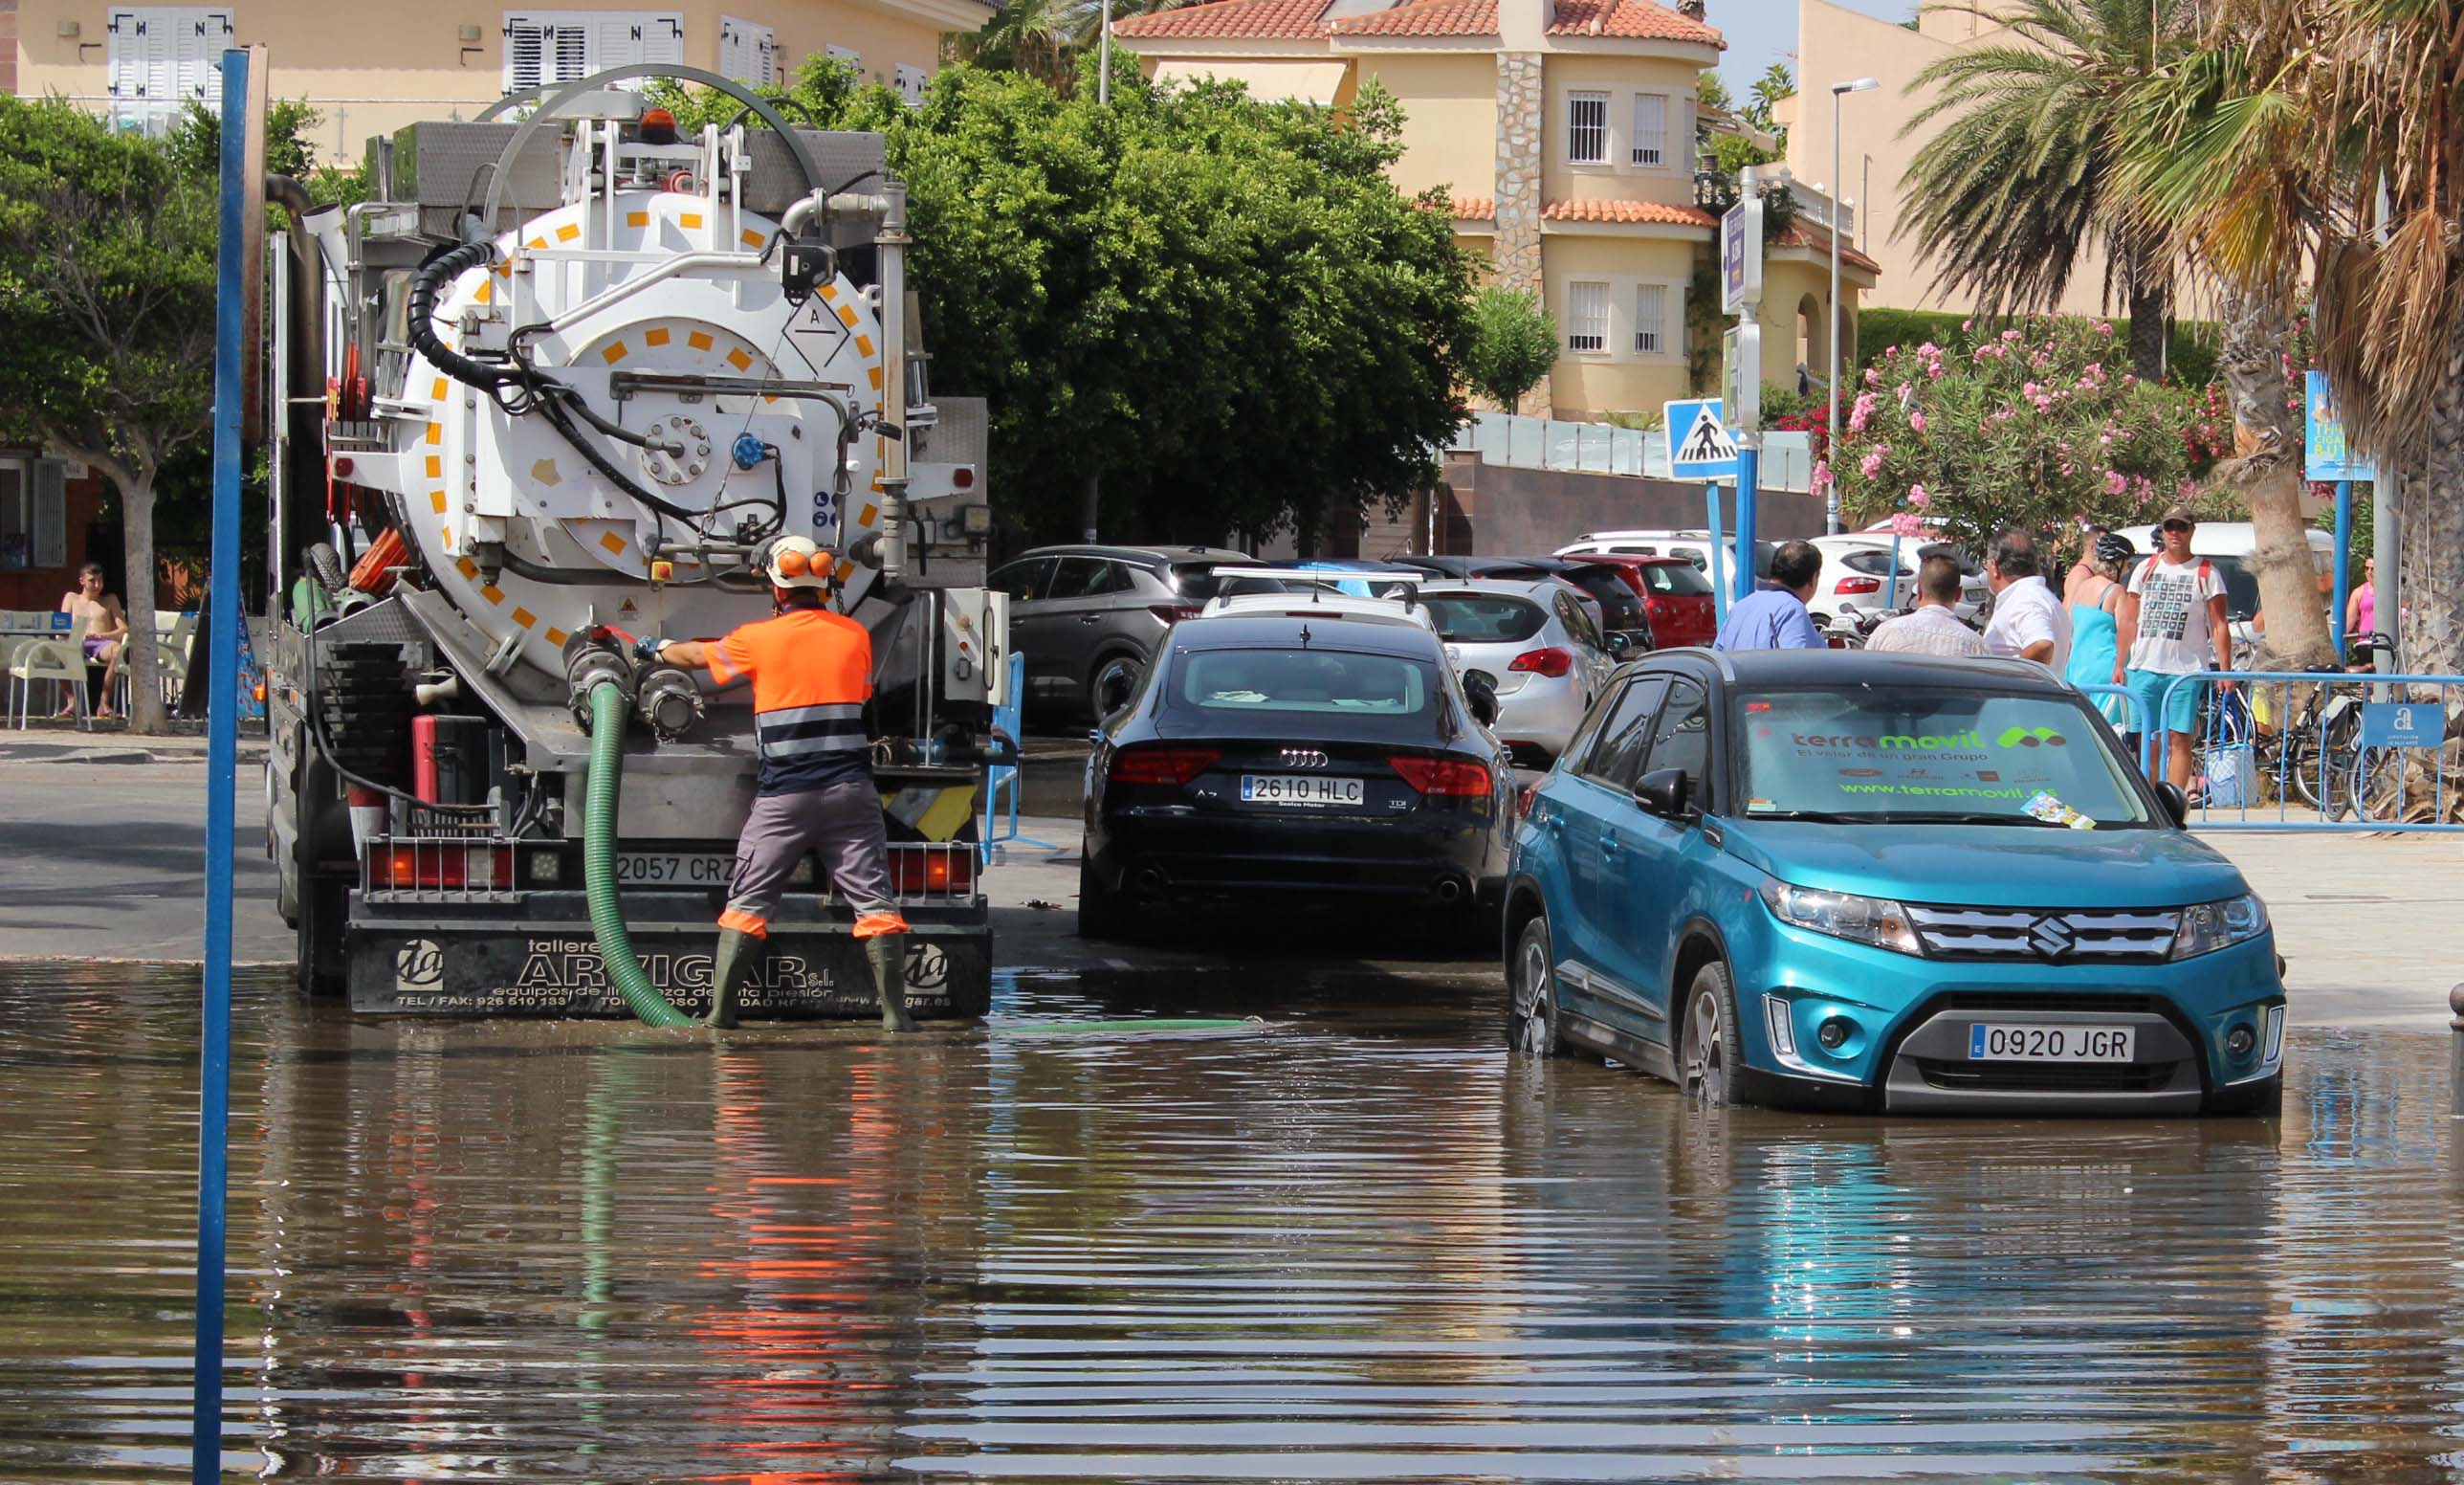 At La Zenia beach the sewage was almost 12 inches deep,